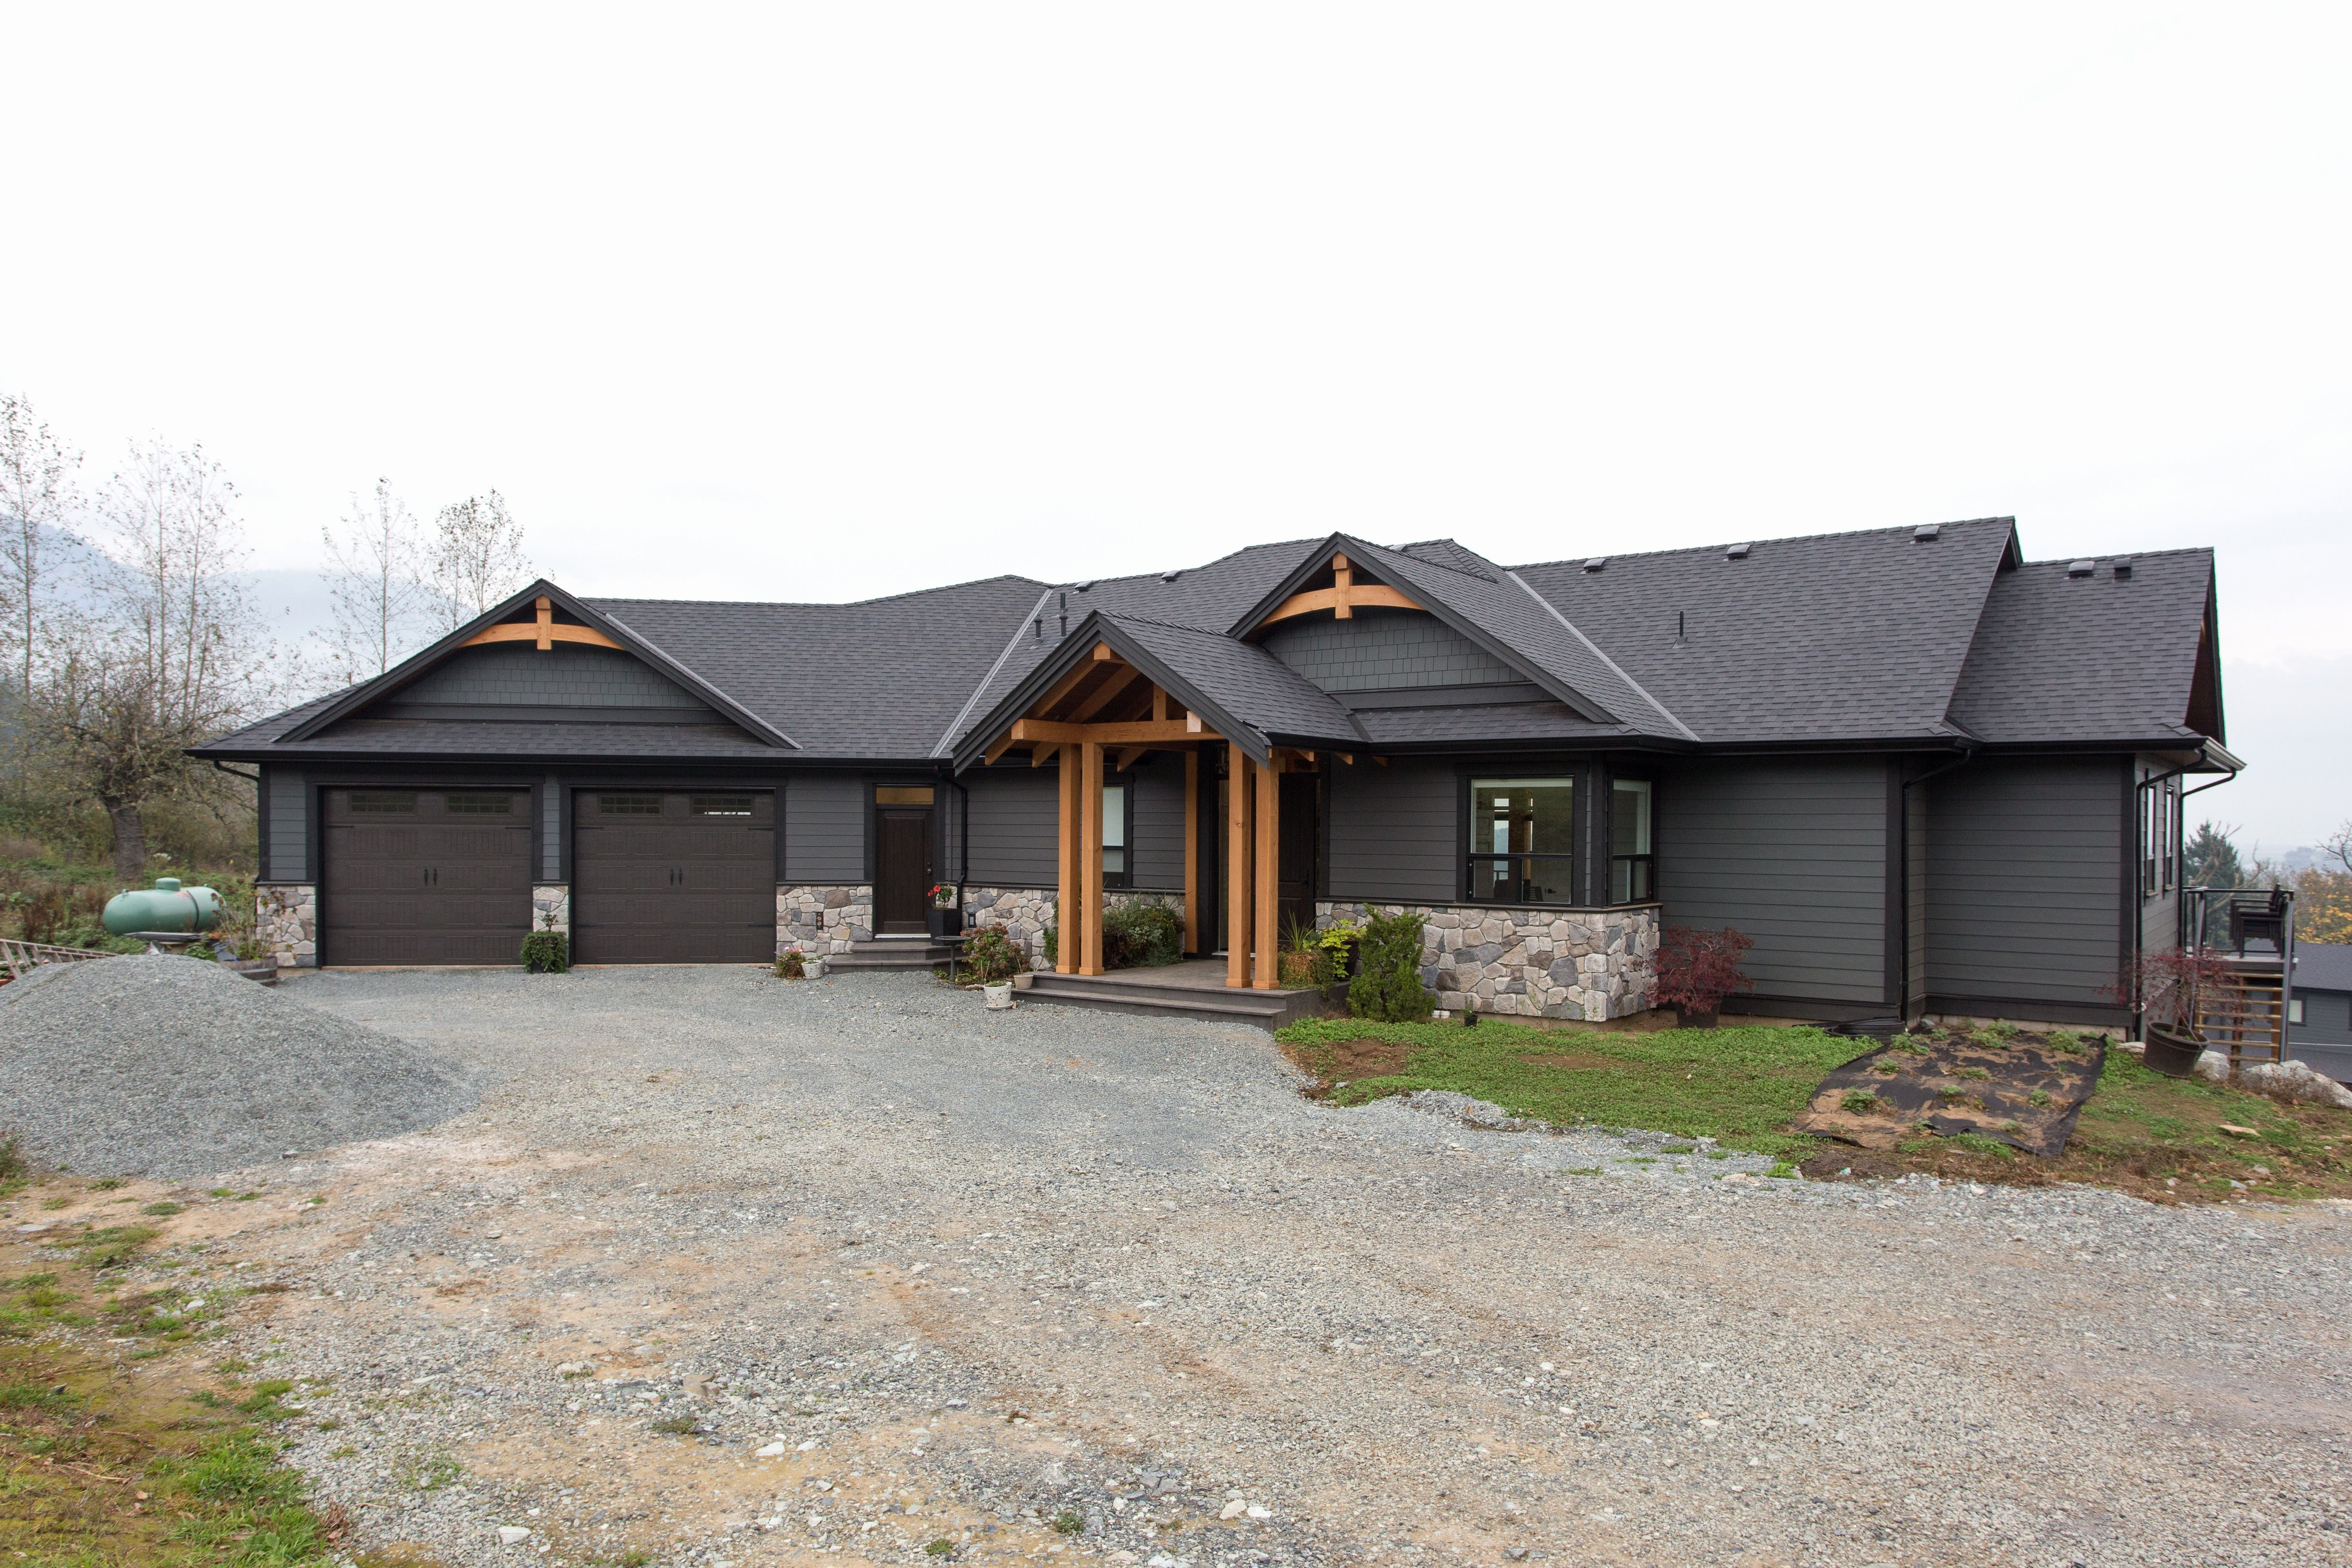 Rustic Craftsman Home Plans Luxury 20 Inspirational E Story Bungalow In Newest Bungalow Modern Farmhouse Plans Craftsman Style House Plans Basement House Plans